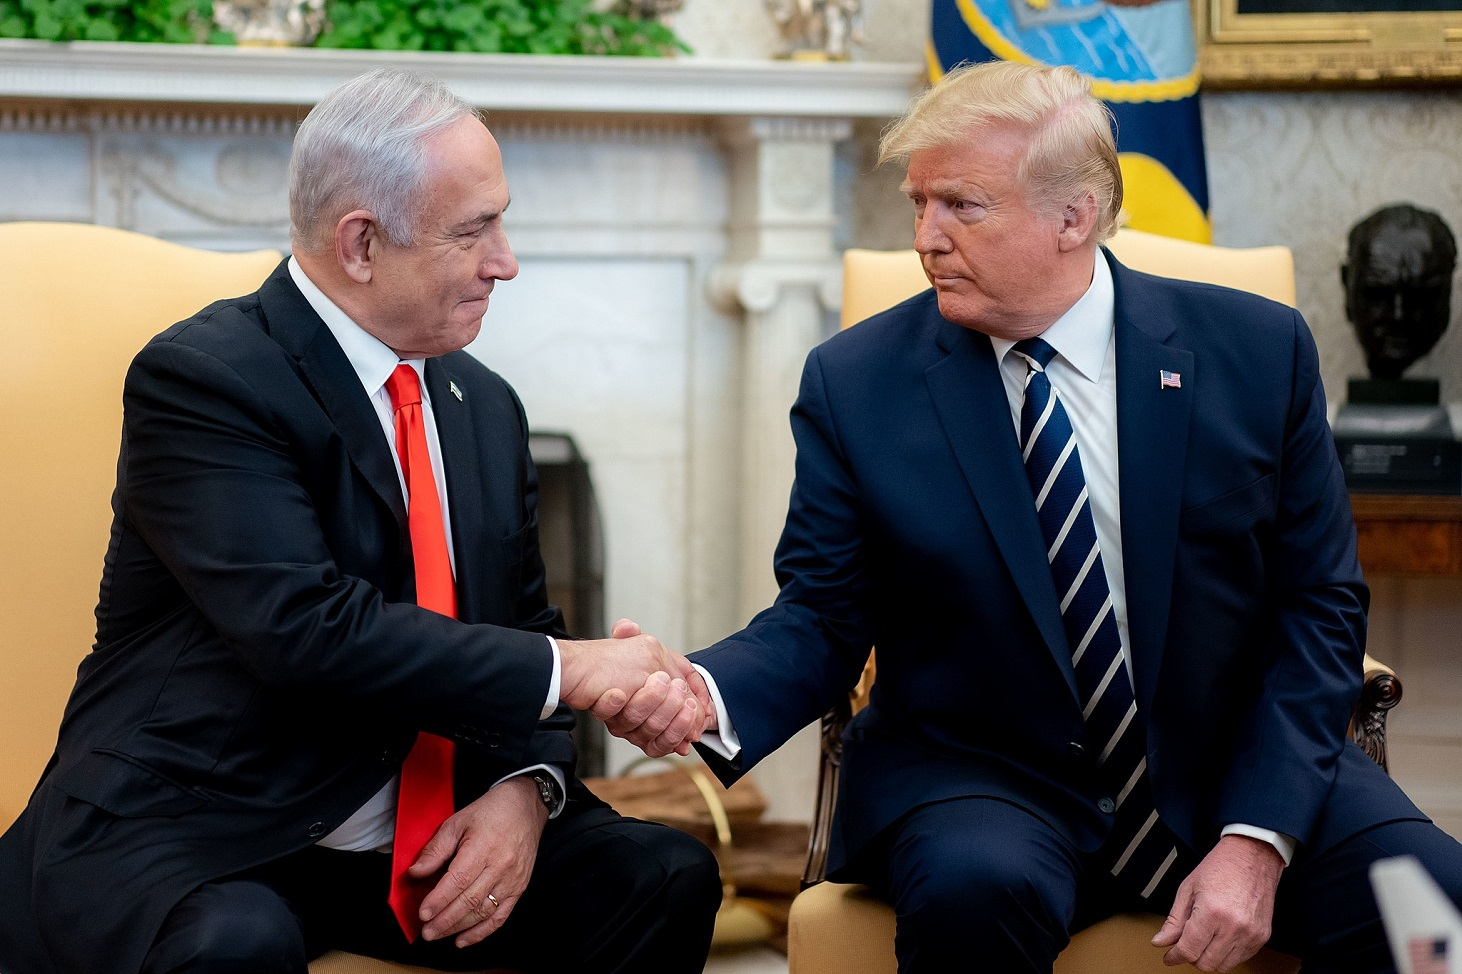 President Donald J. Trump and Vice President Mike Pence participate in an expanded bilateral meeting with Israeli Prime Minister Benjamin Netanyahu Monday, Jan. 27, 2020, in the Oval Office of the White House. (Official White House Photo by D. Myles Cullen)